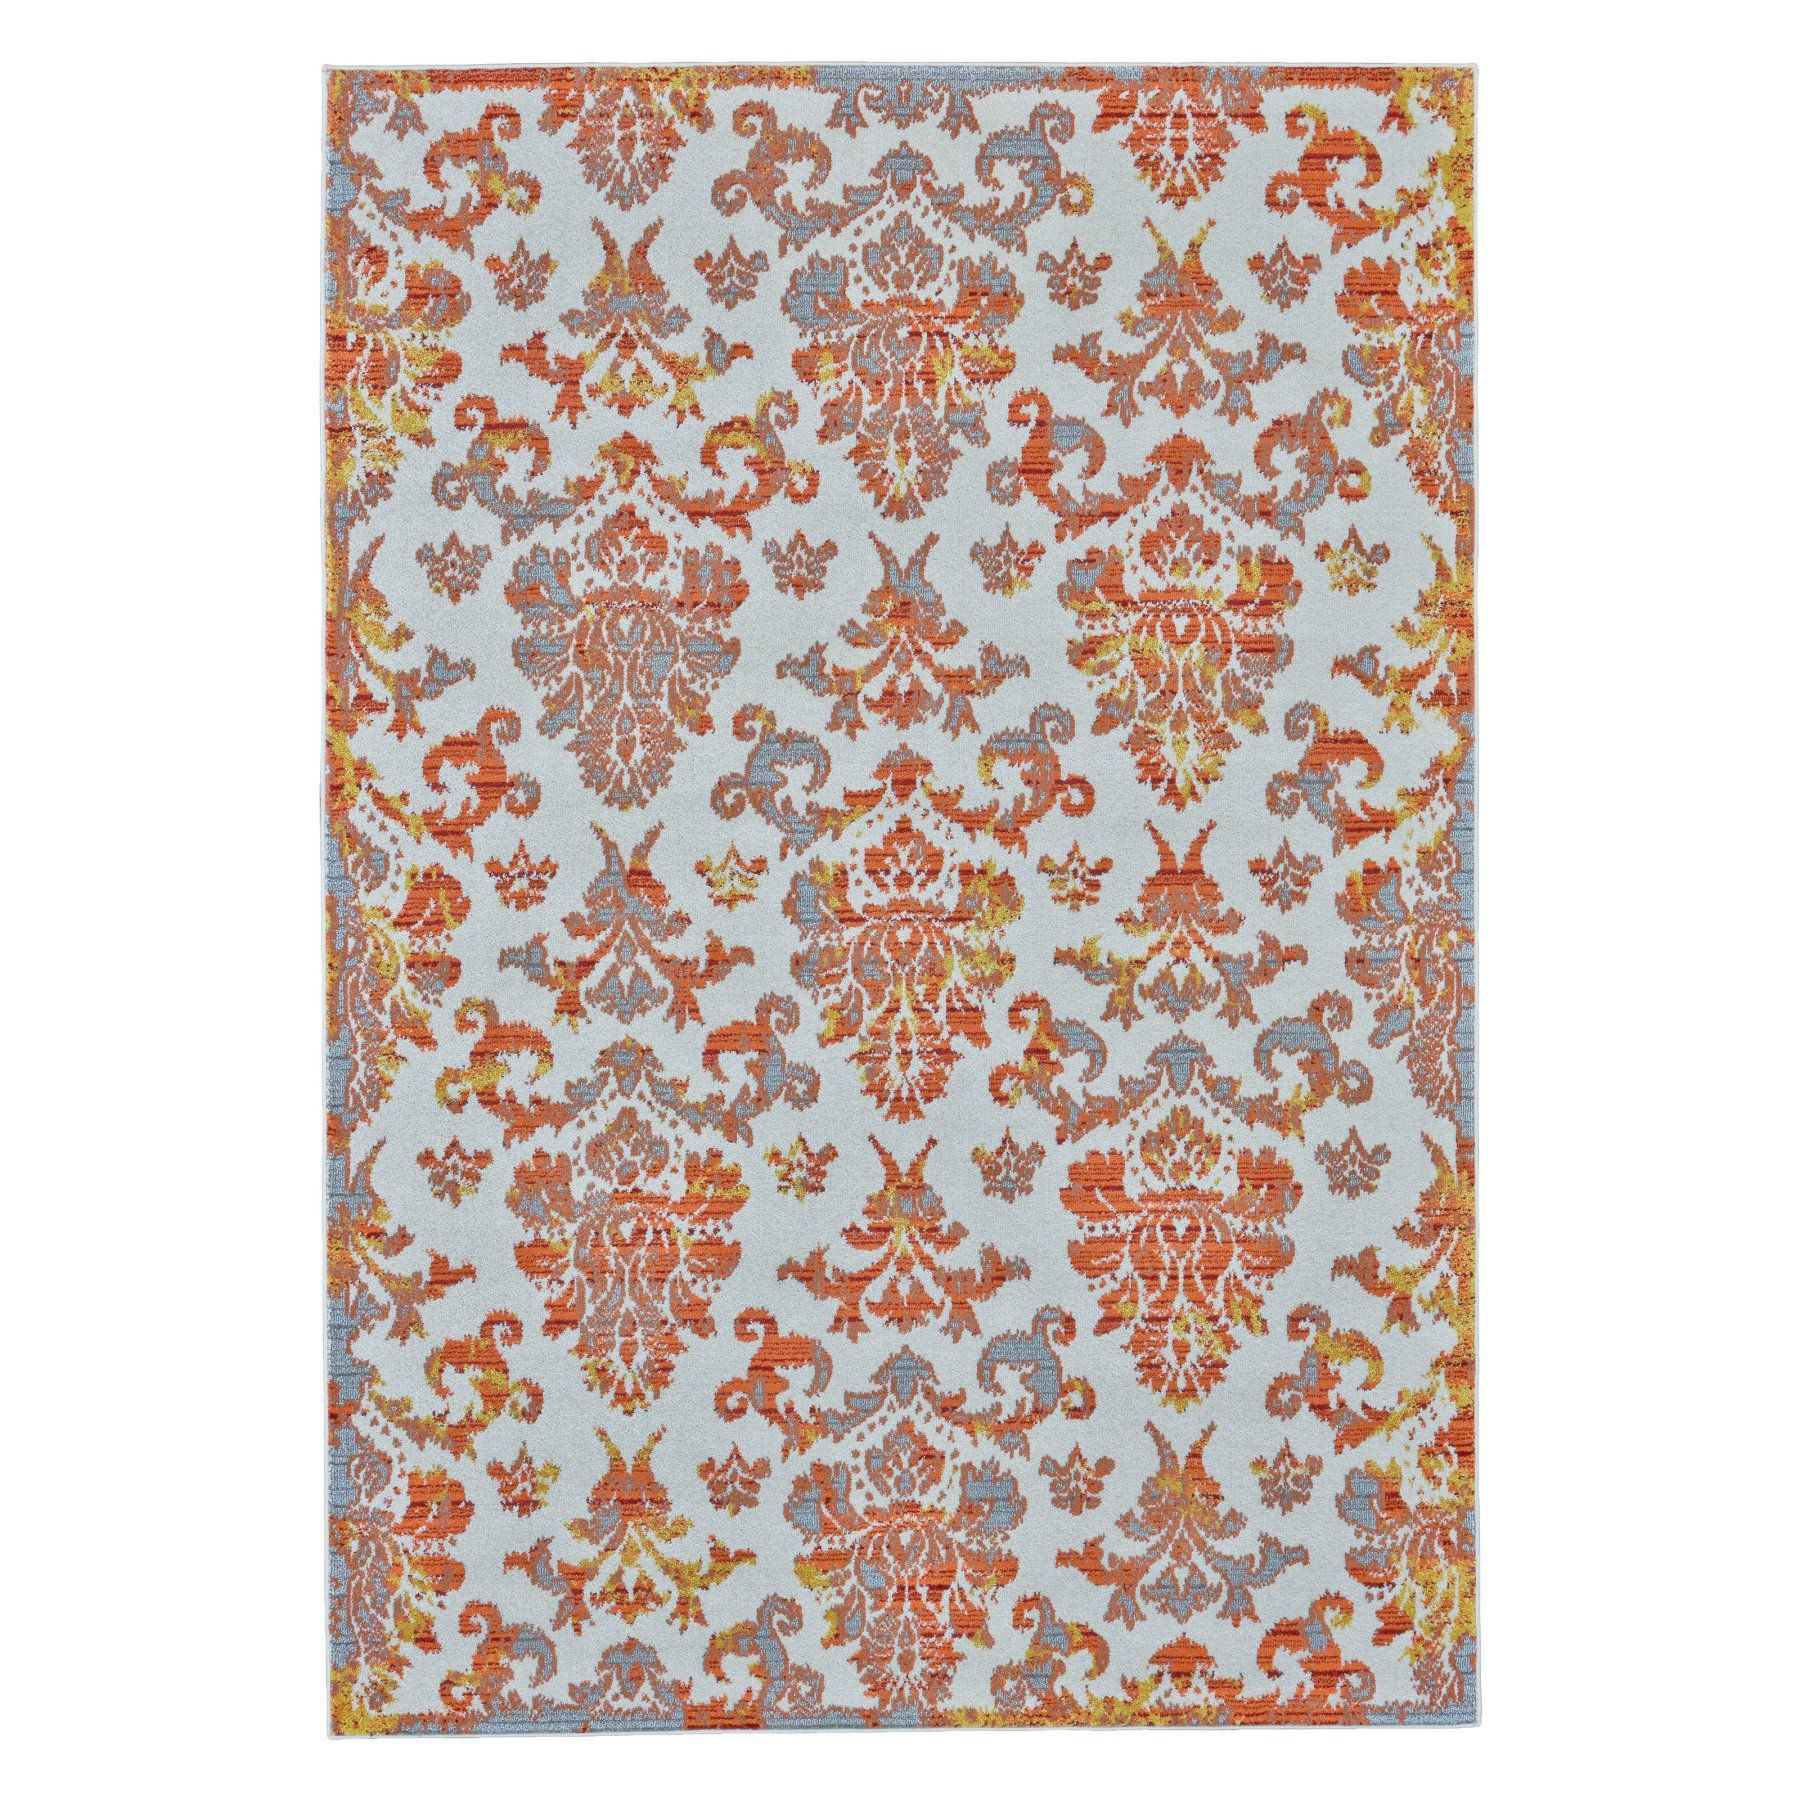 Outdoor Teppich Qvc Room Envy Undira Indoor Rug Apricot 712r3423apr000a22